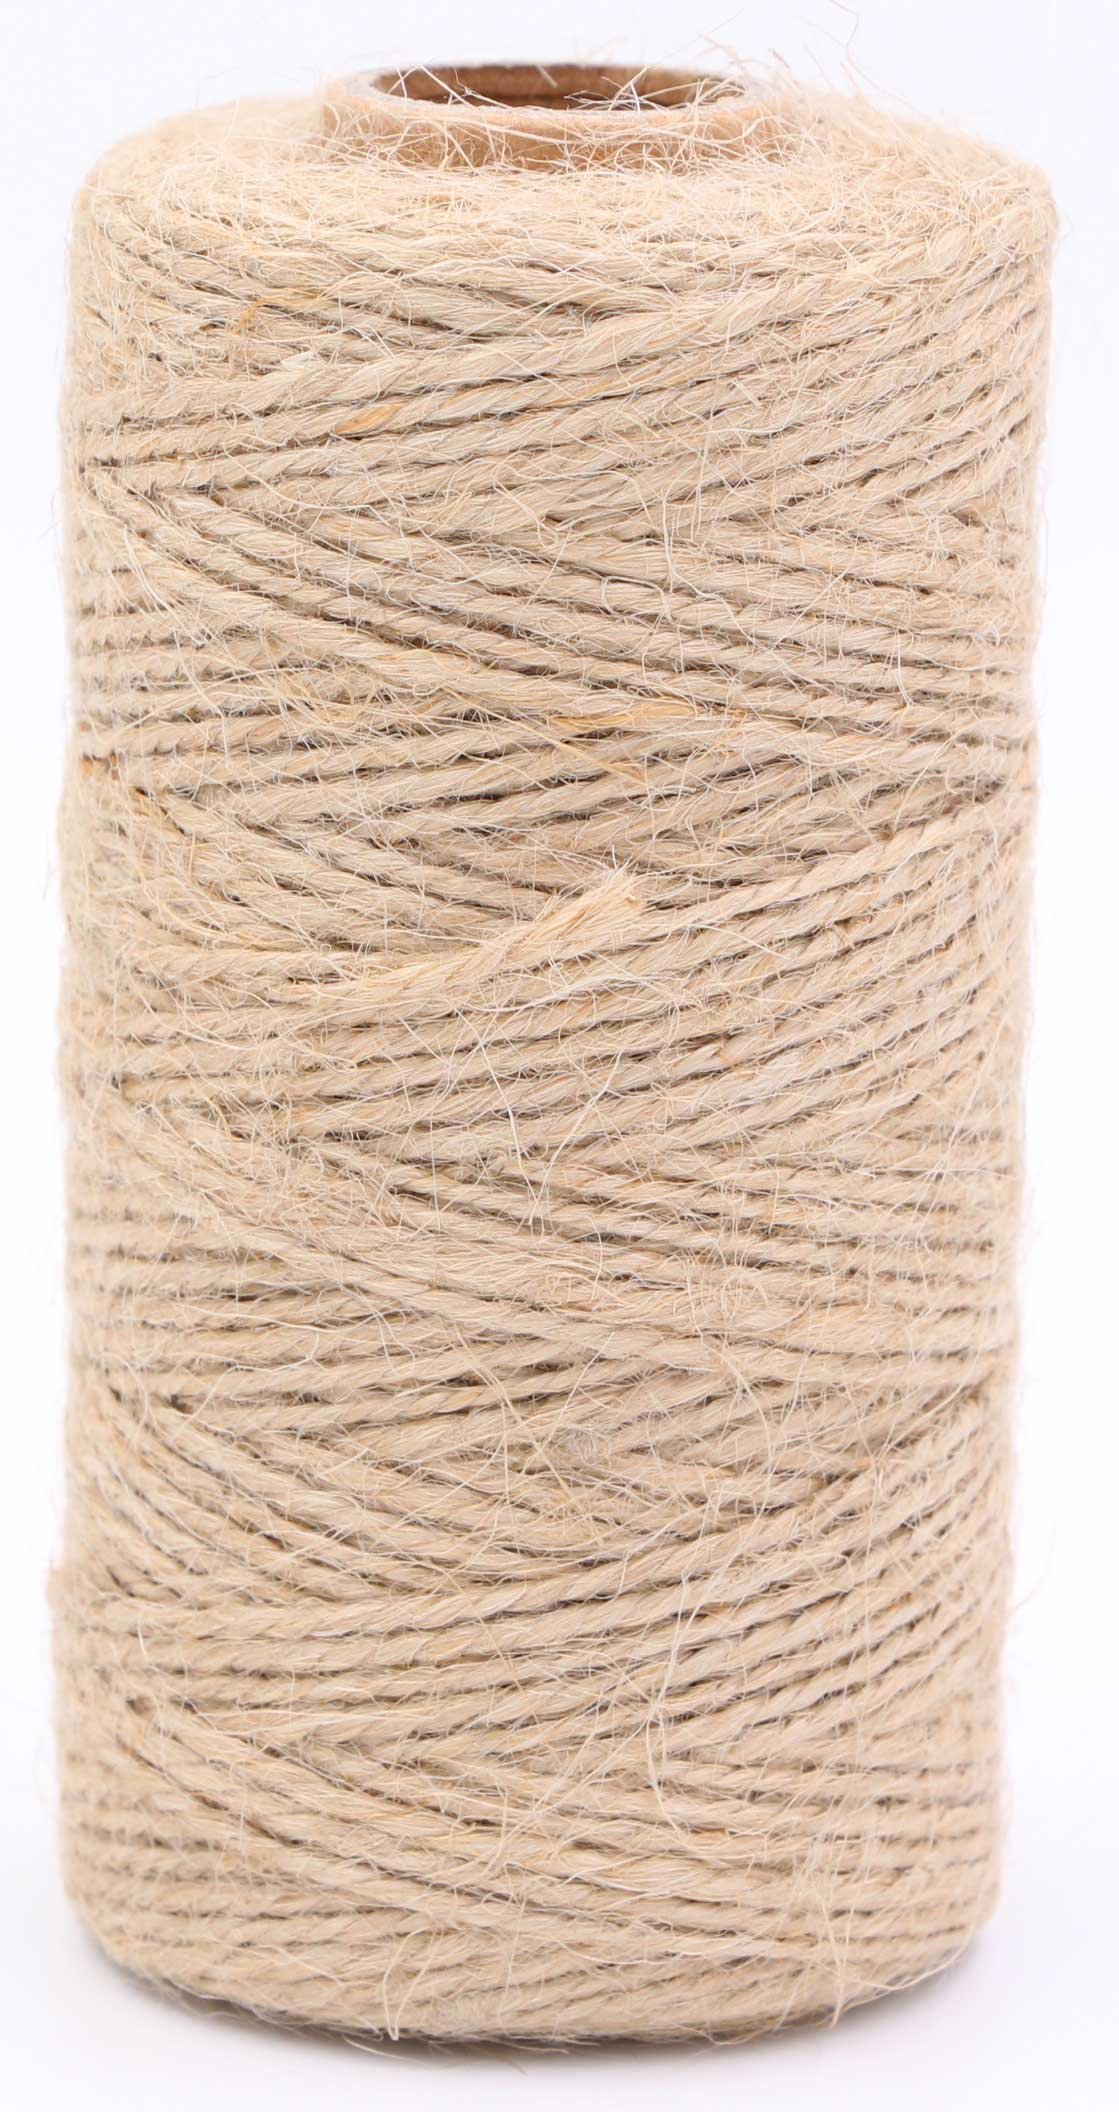 Natural Jute Twine-LeBeila Natural Hemp Cord Jute Twine String, 2ply Industrial Packing Materials Durable Twine String For Gardening, Arts Crafts, Gift, Christmas (328 feet, natural)